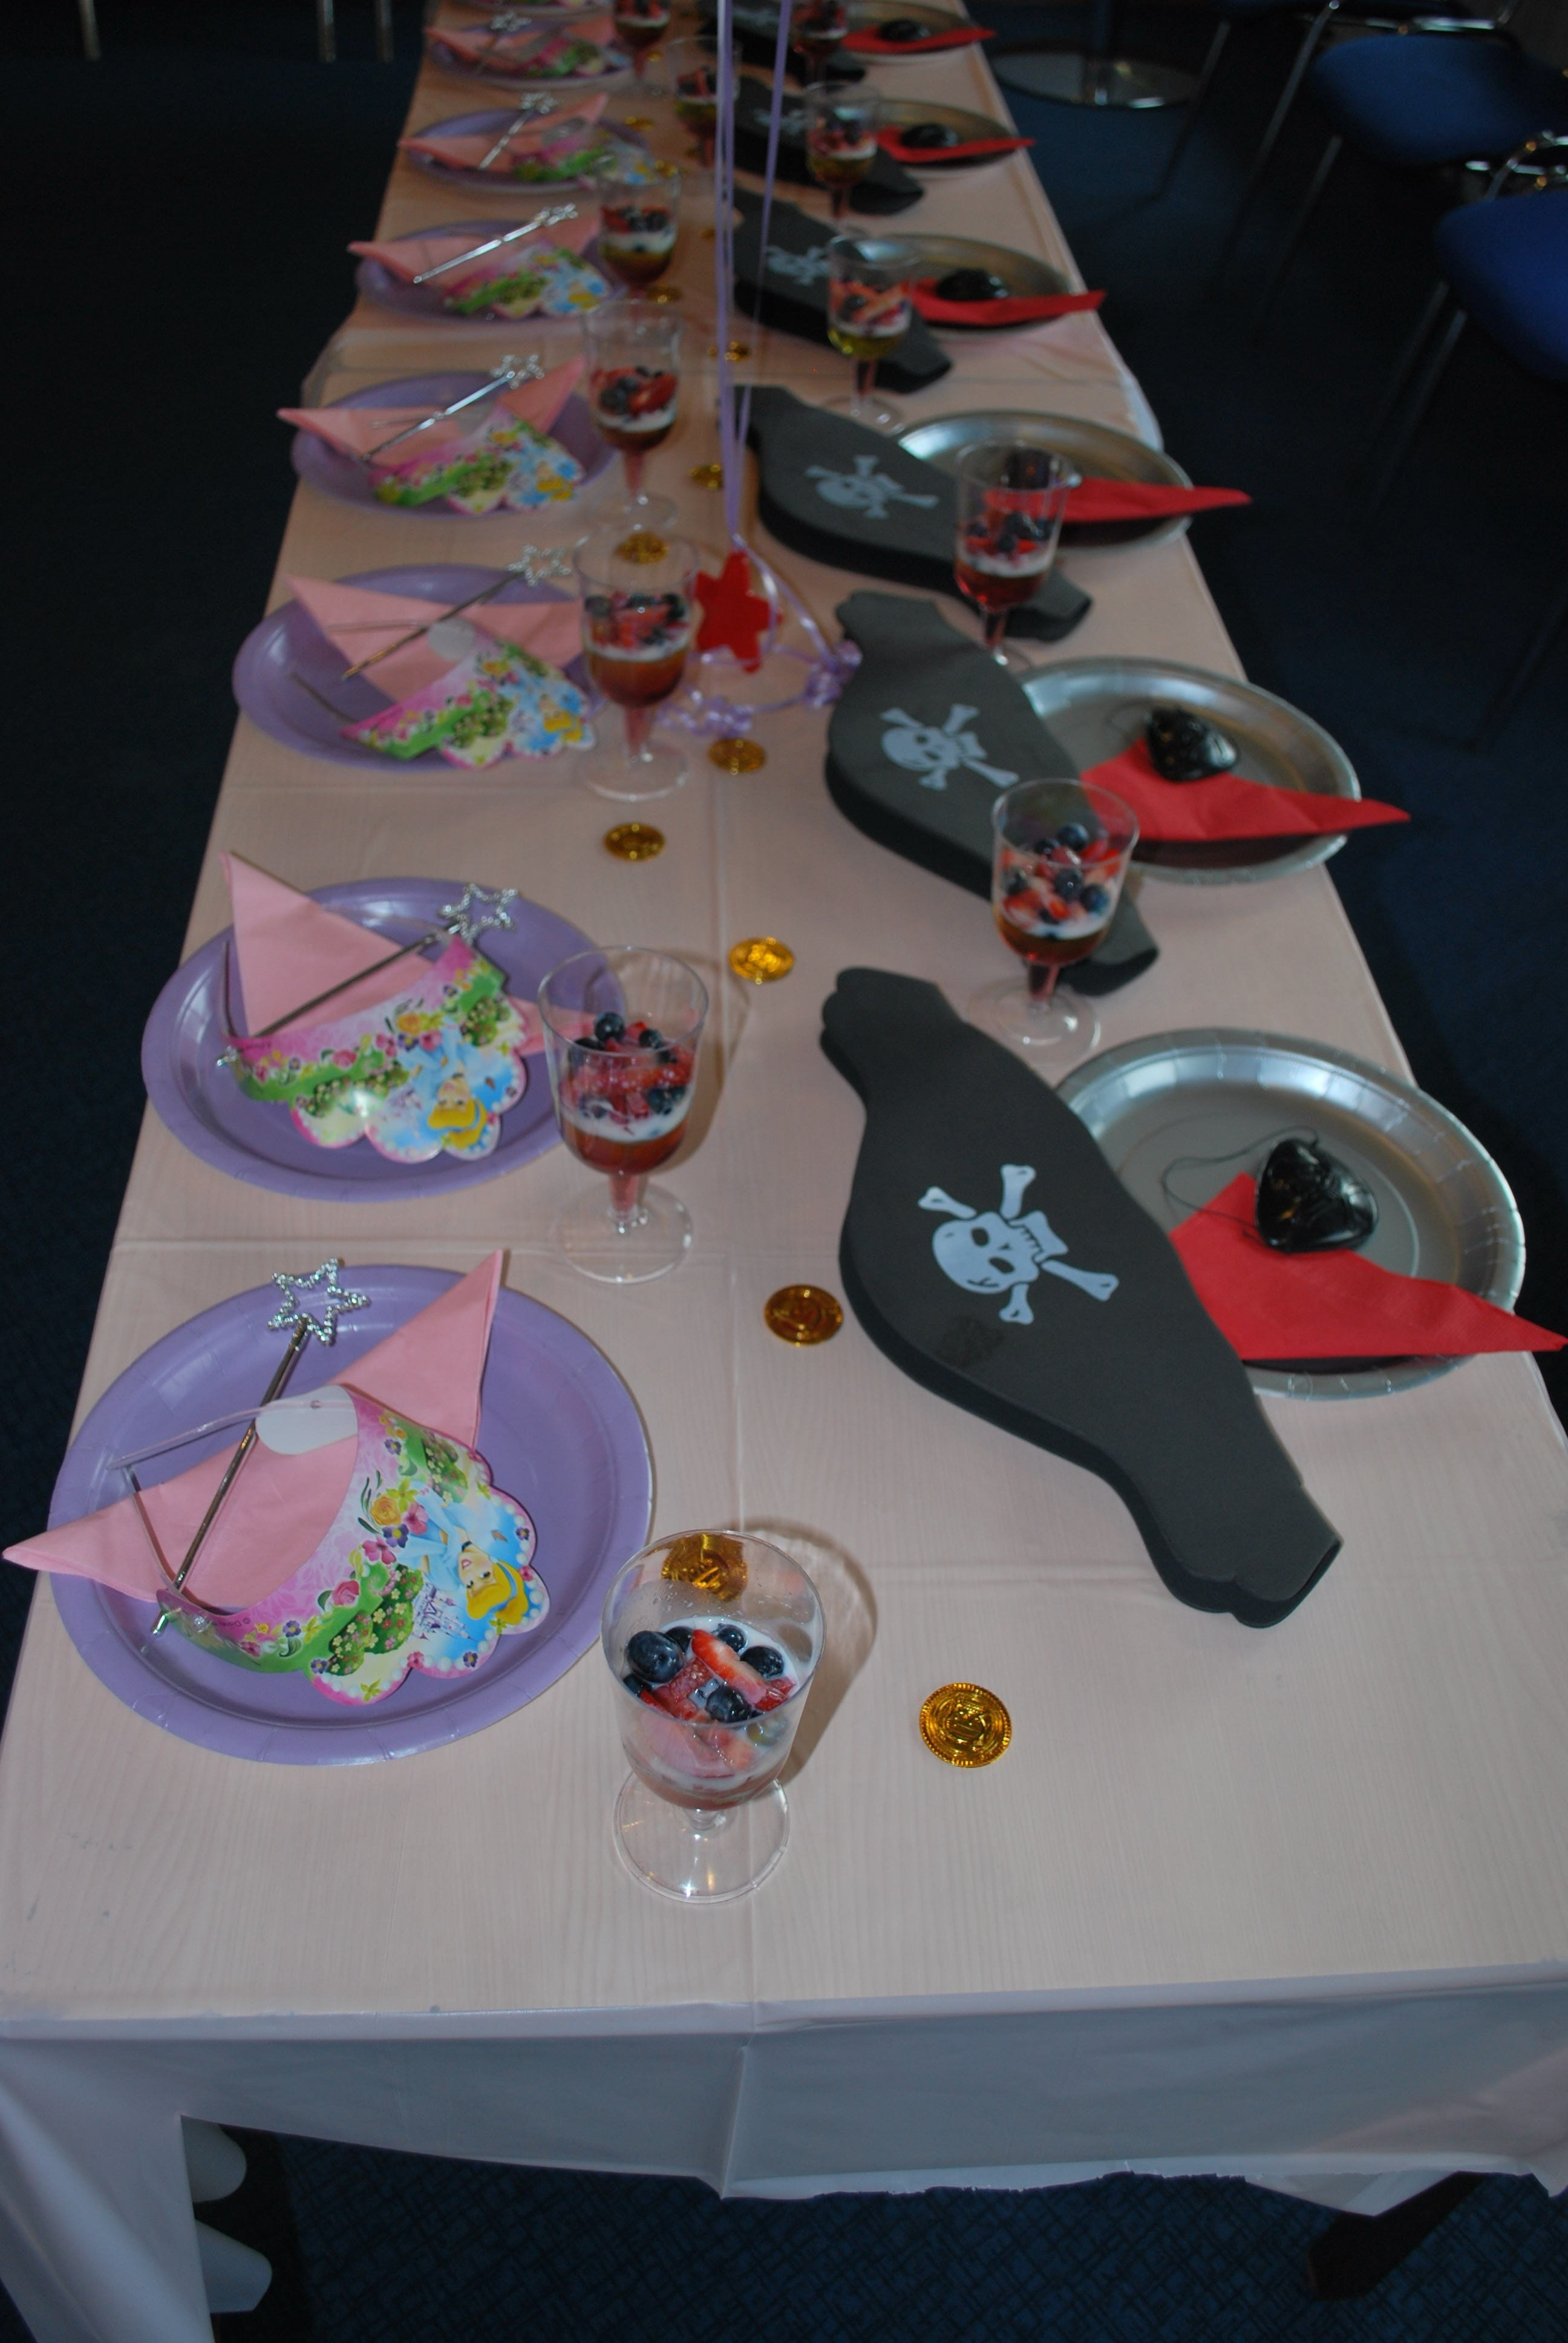 princess & pirates party decoration ideas from www.easykid.co.uk